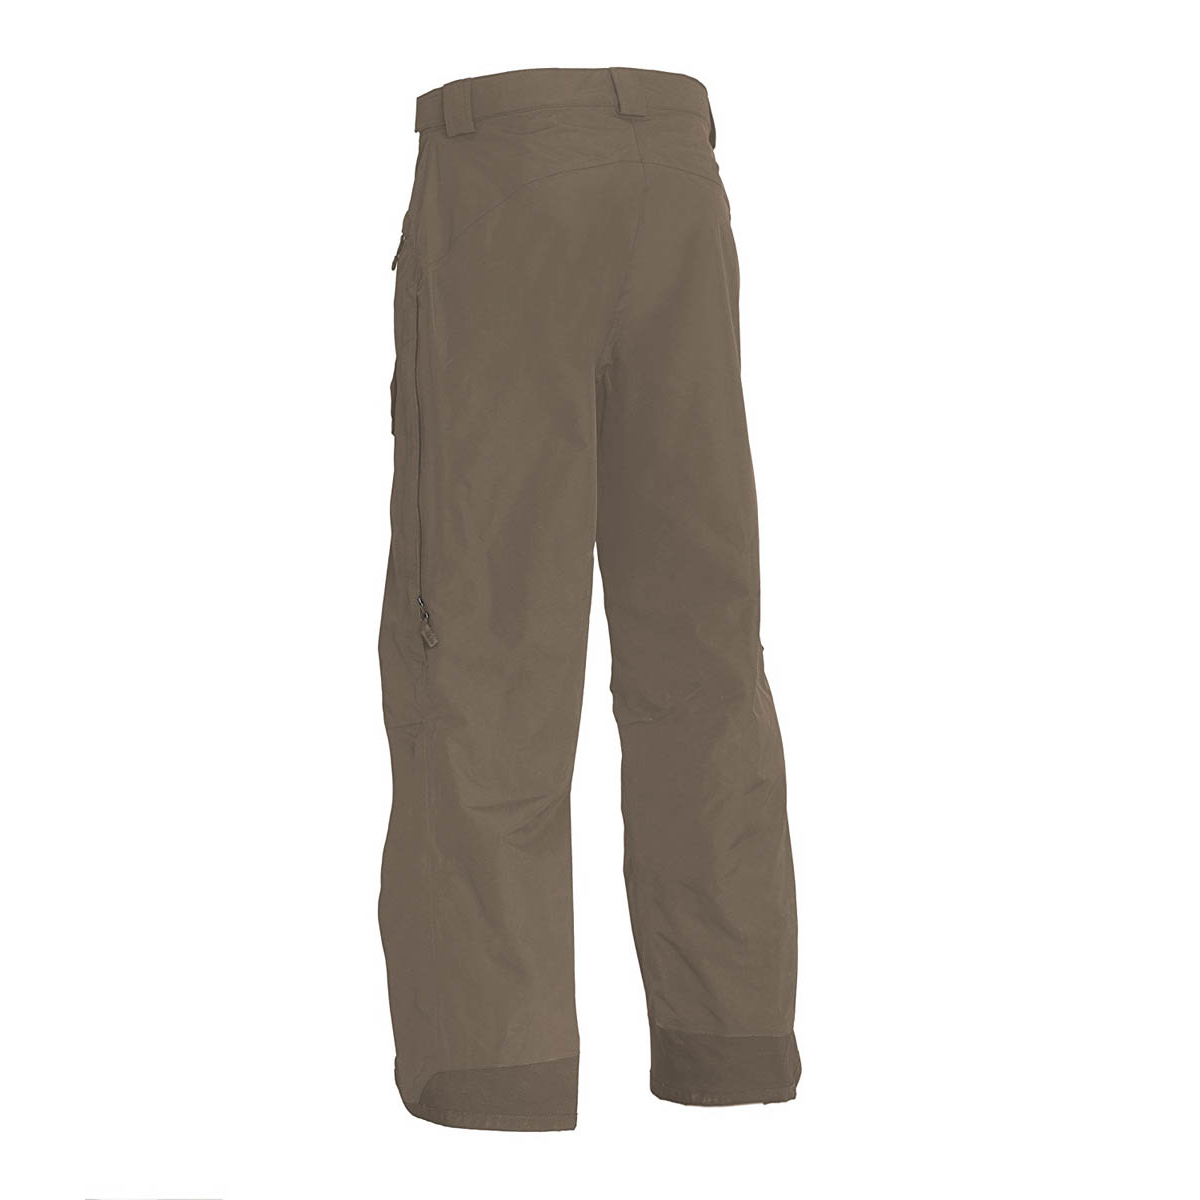 THE NORTH FACE - REVOLUTION PANT